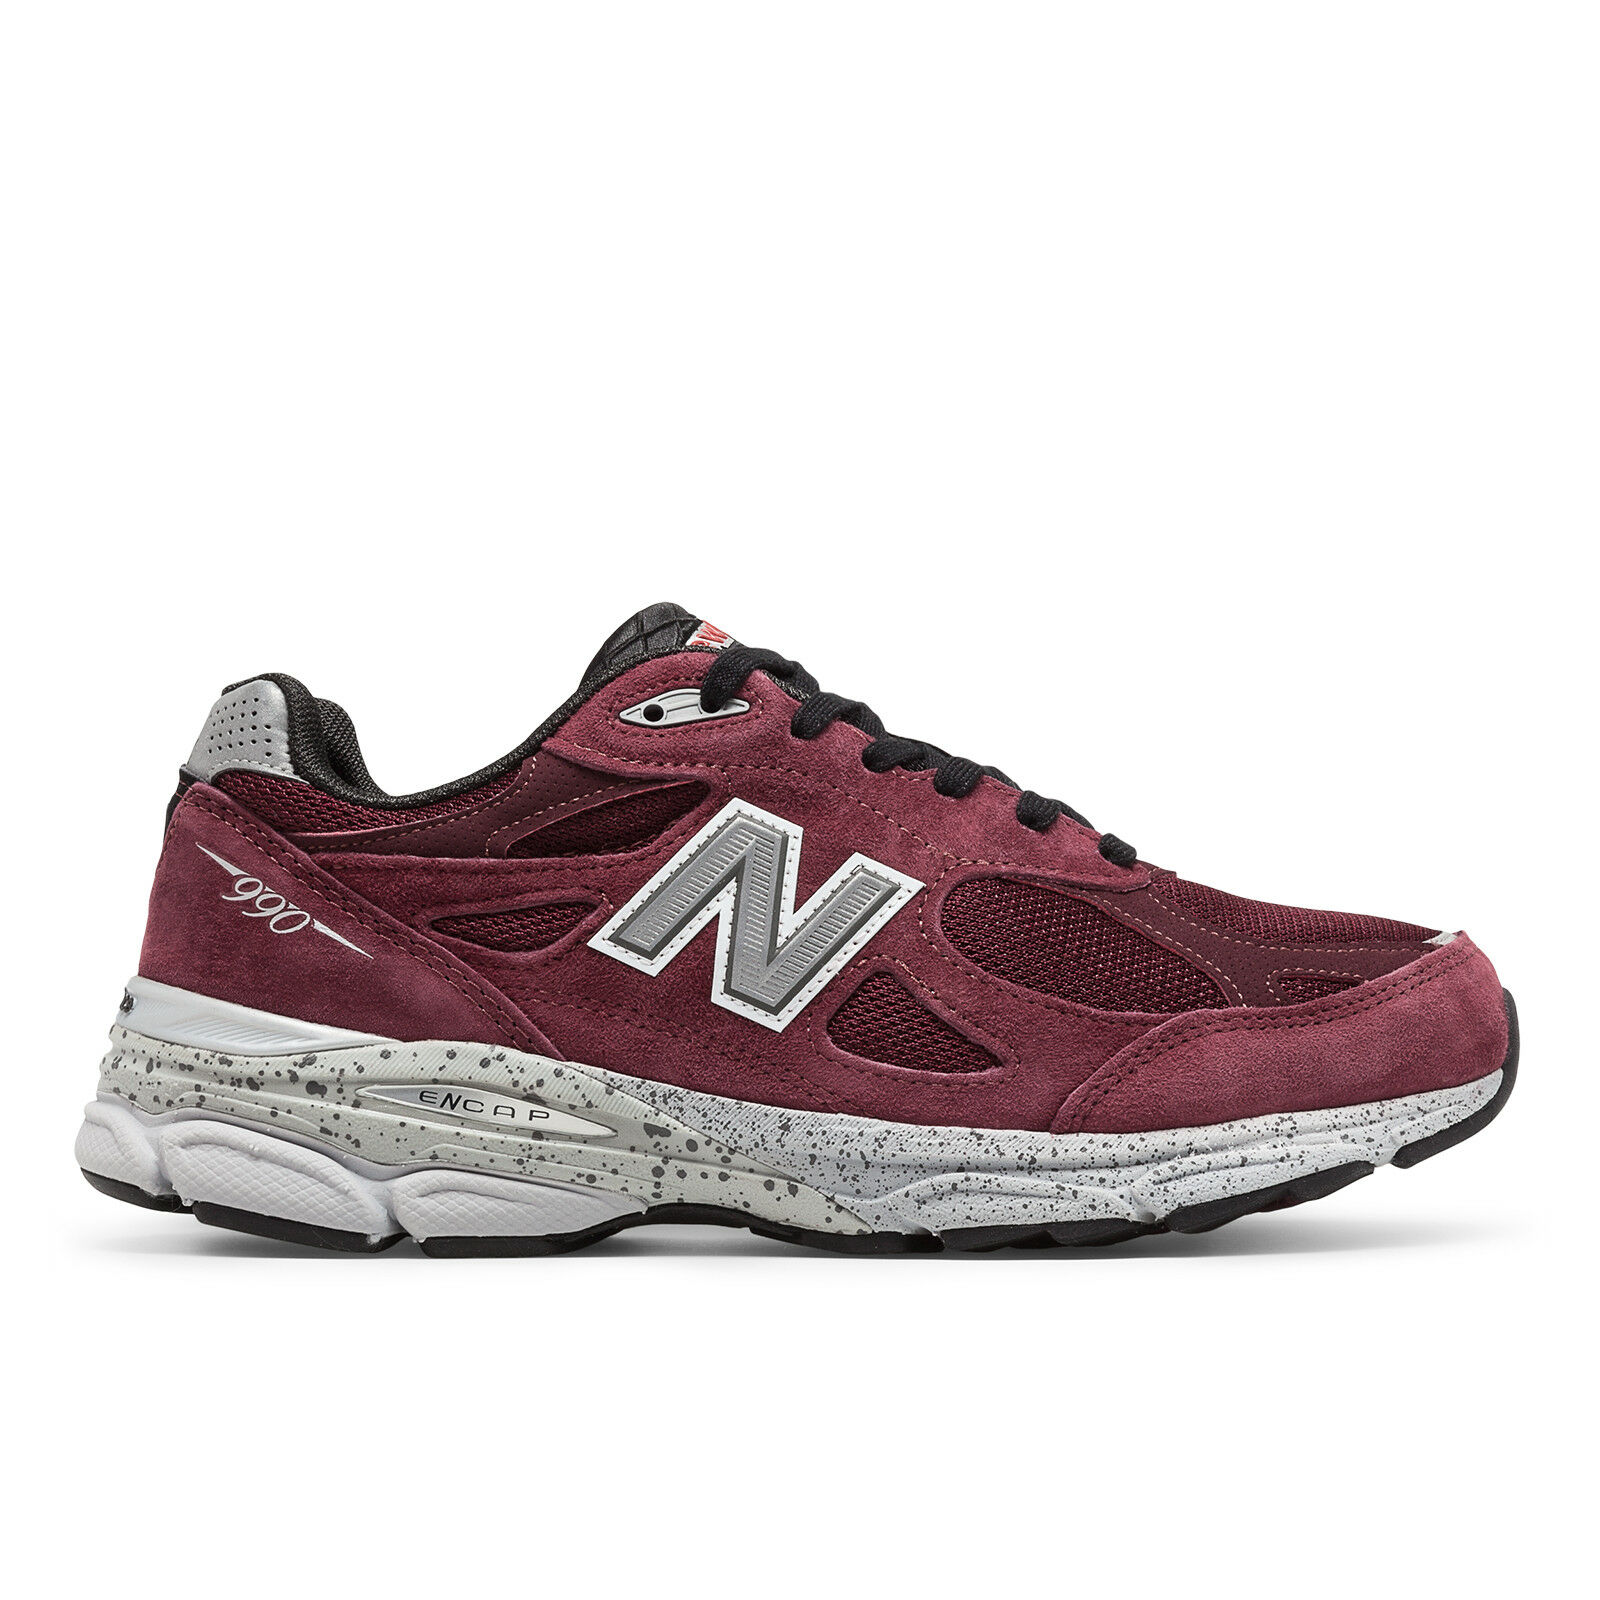 NEW BALANCE MENS M990 RUNNING SHOES BURGUNDY NAVY BLACK/AQUA